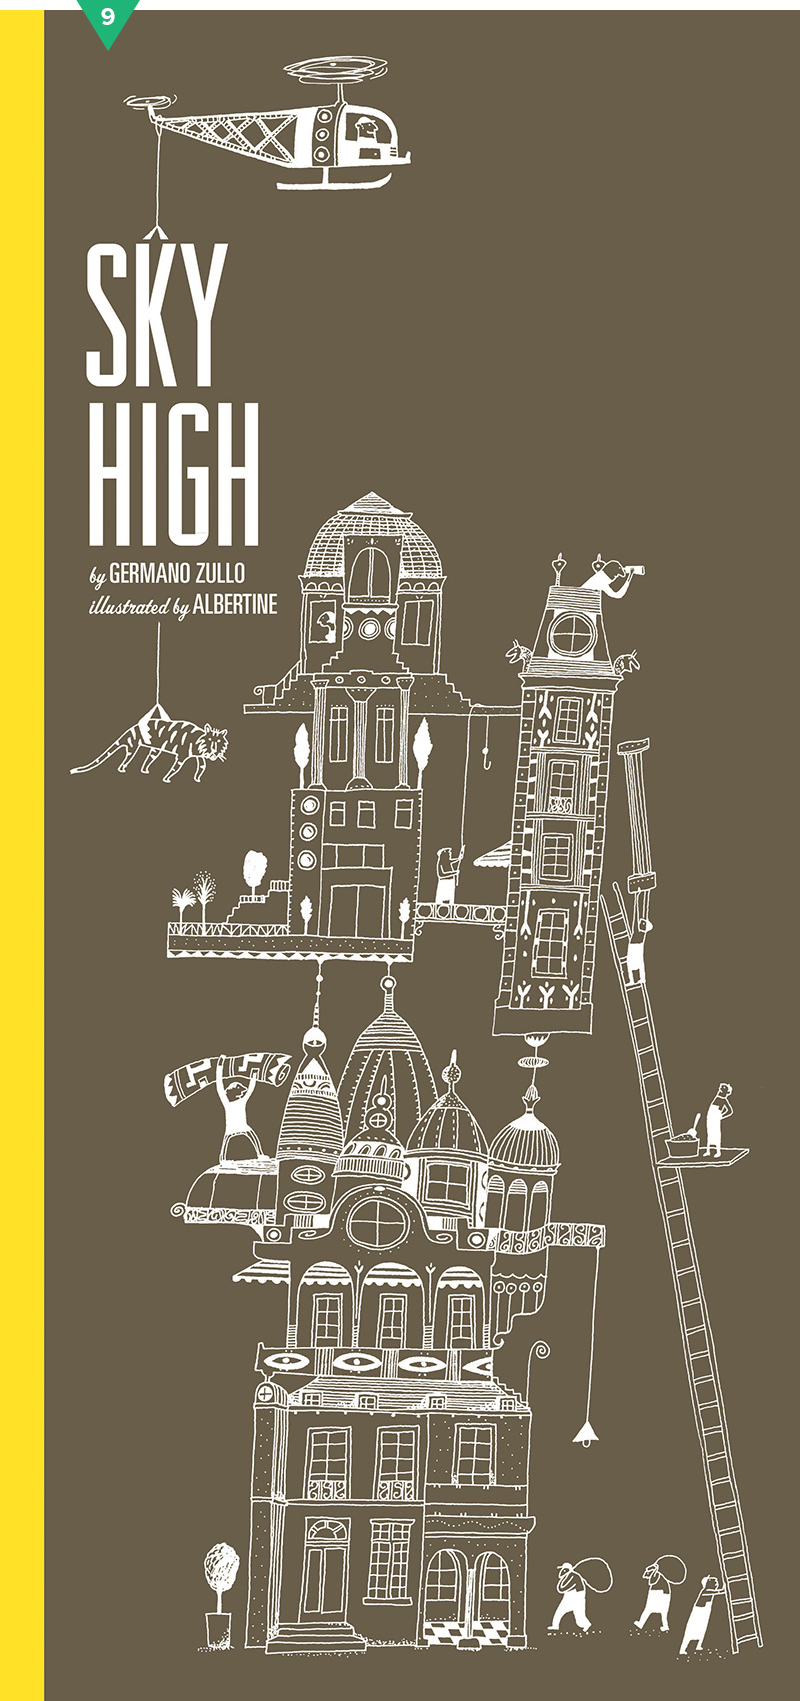 Sky High #givebooks